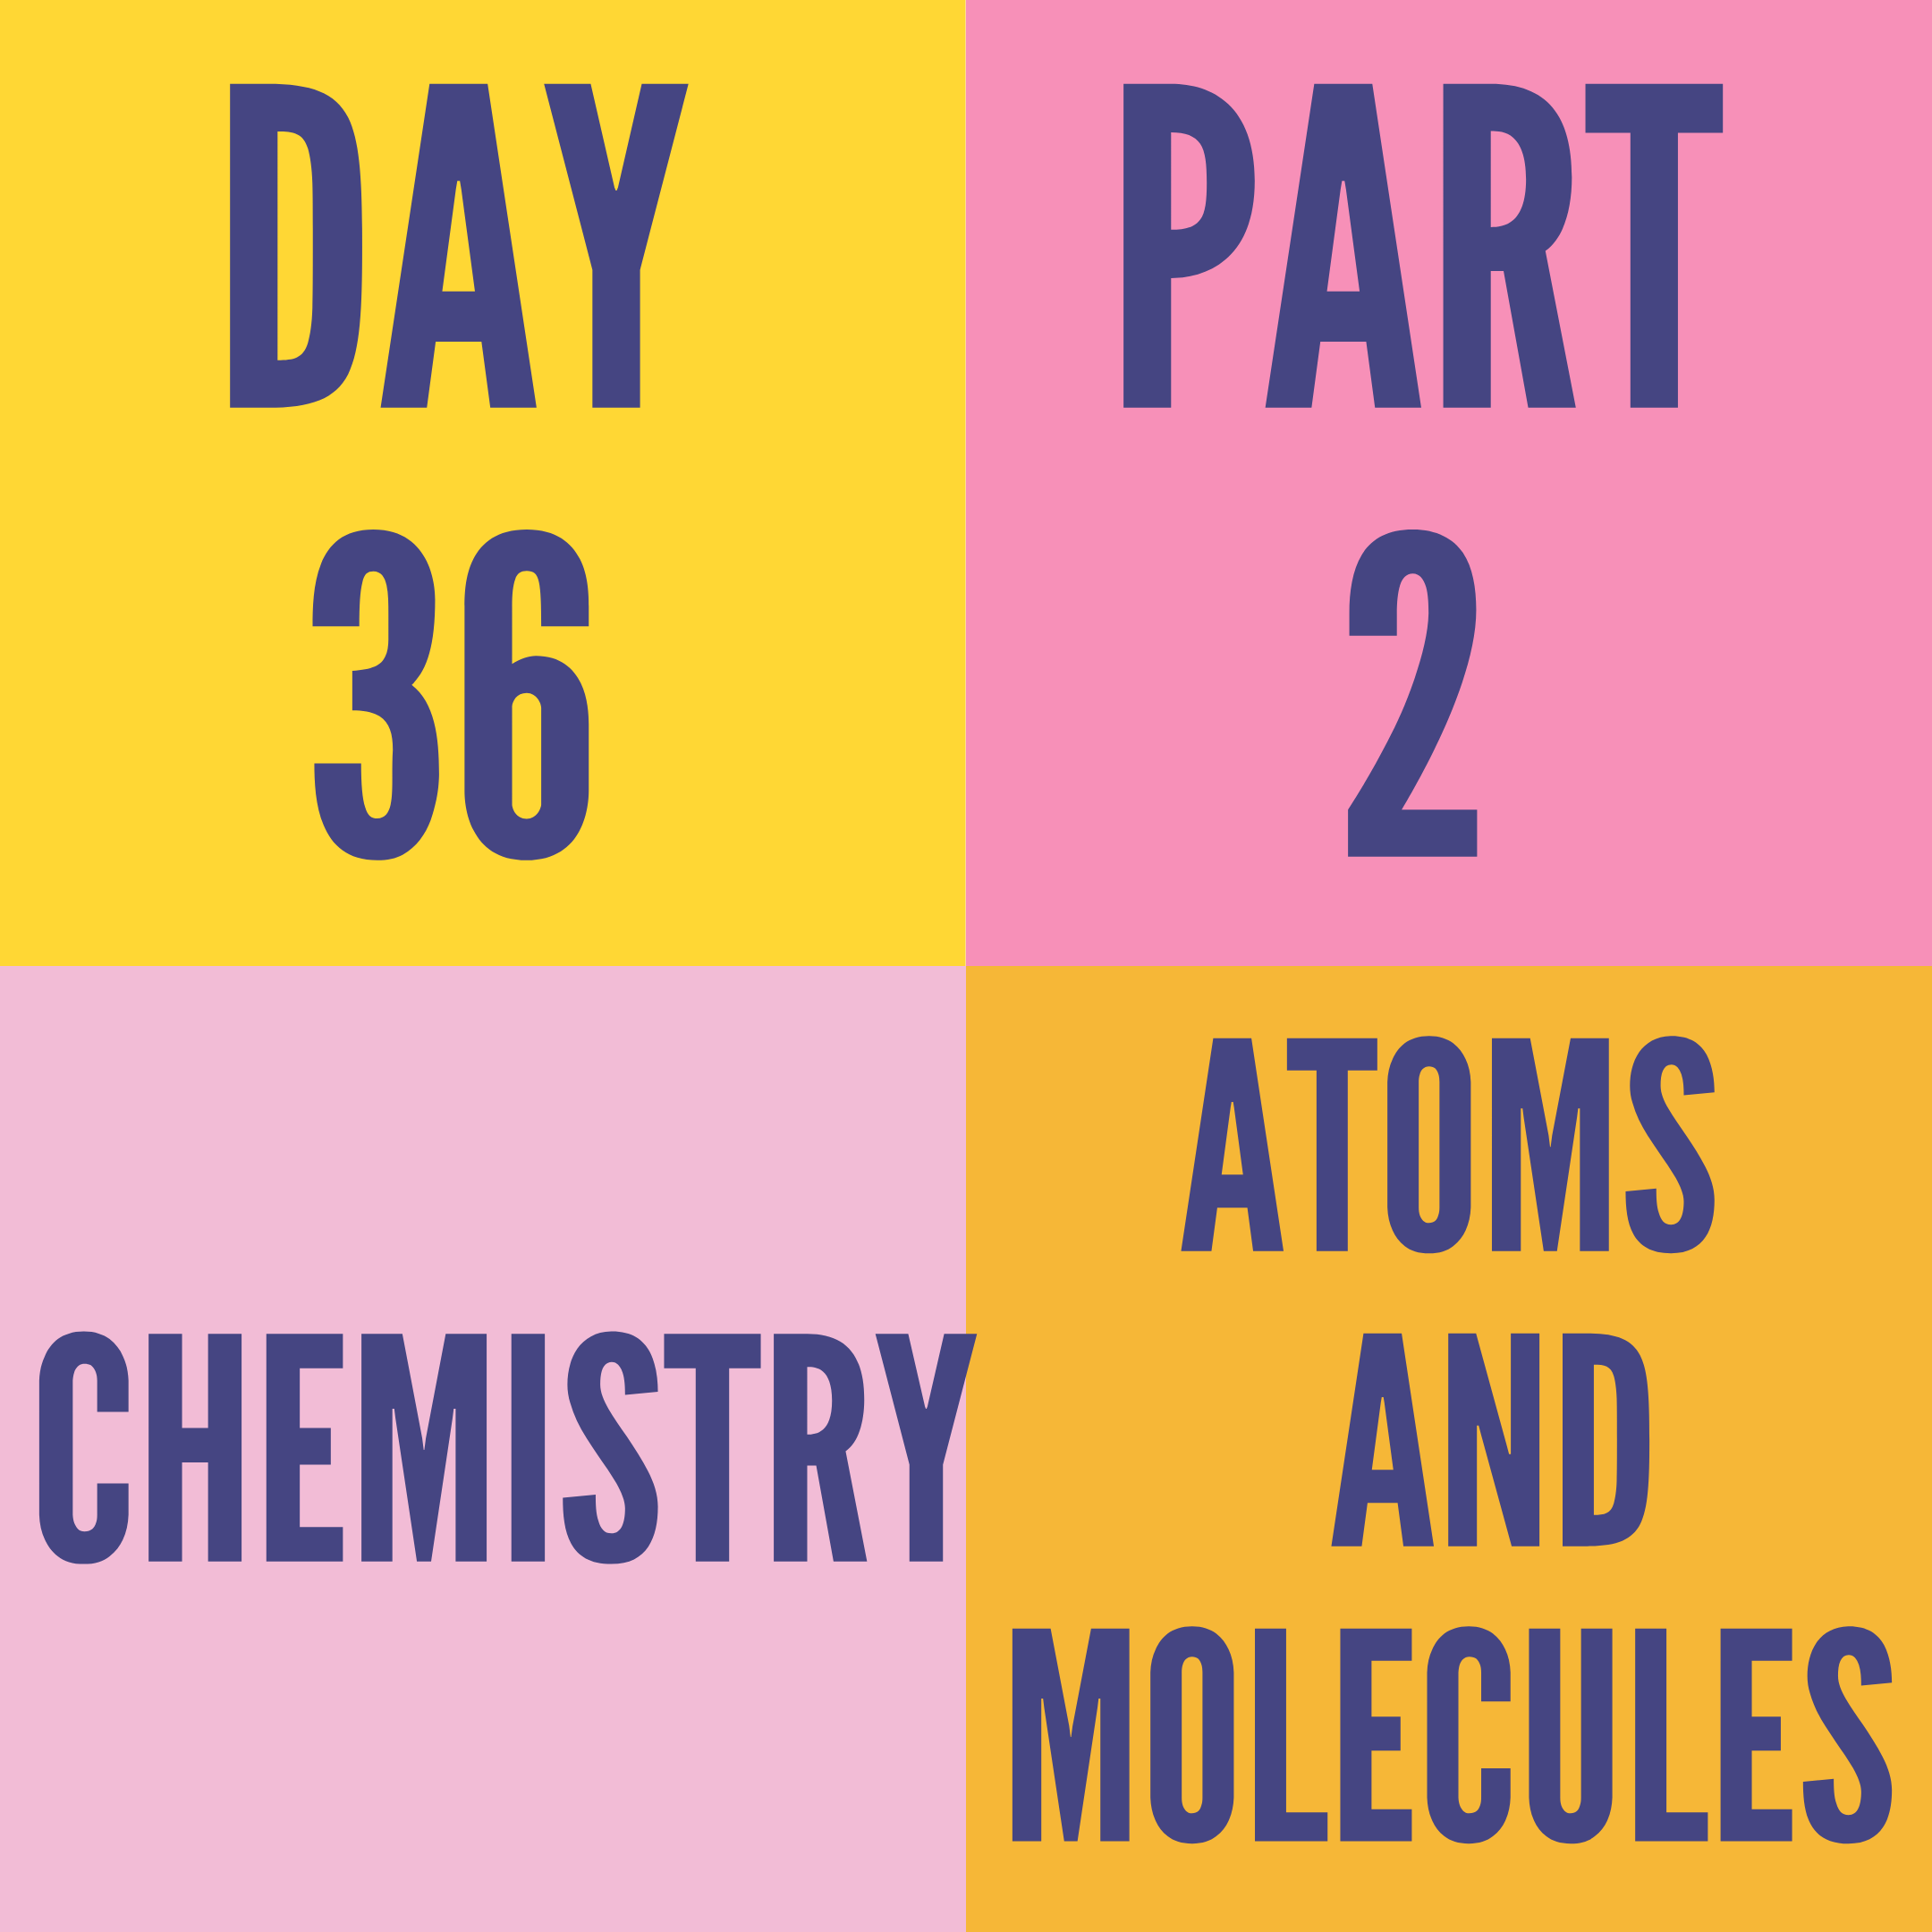 DAY-36 PART-2 ATOMS AND MOLECULES